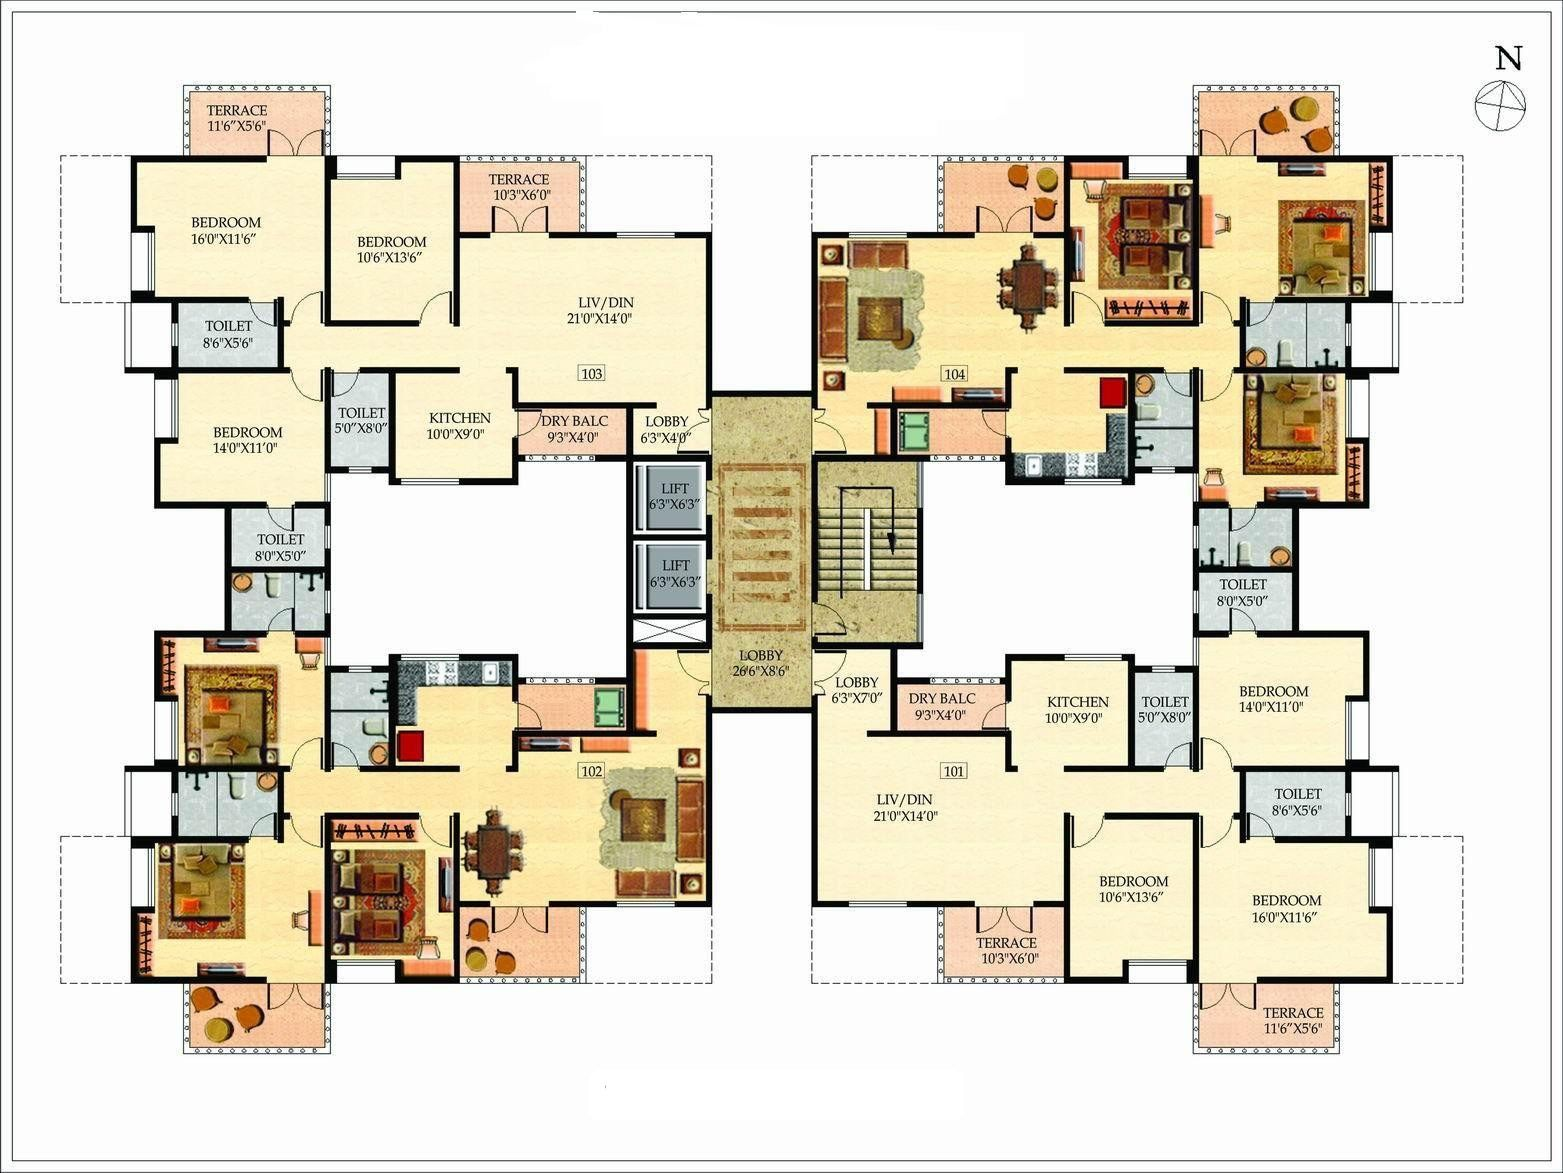 6 Bedroom Mansion Floor Plans Design Ideas 2017 2018